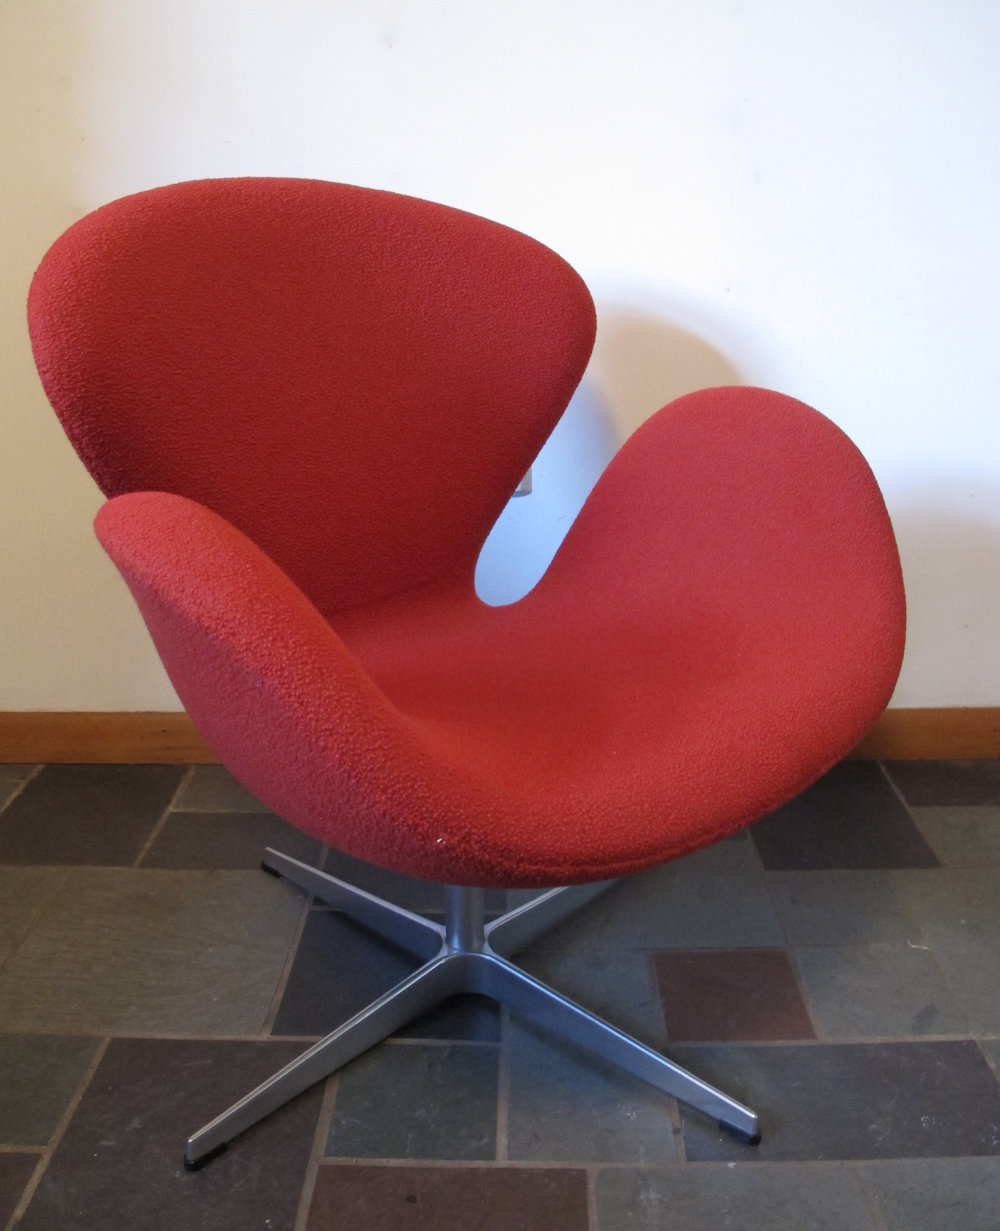 ORIGINAL ARNE JACOBSEN FRITZ HANSEN RED SWAN CHAIR BY KNOLL